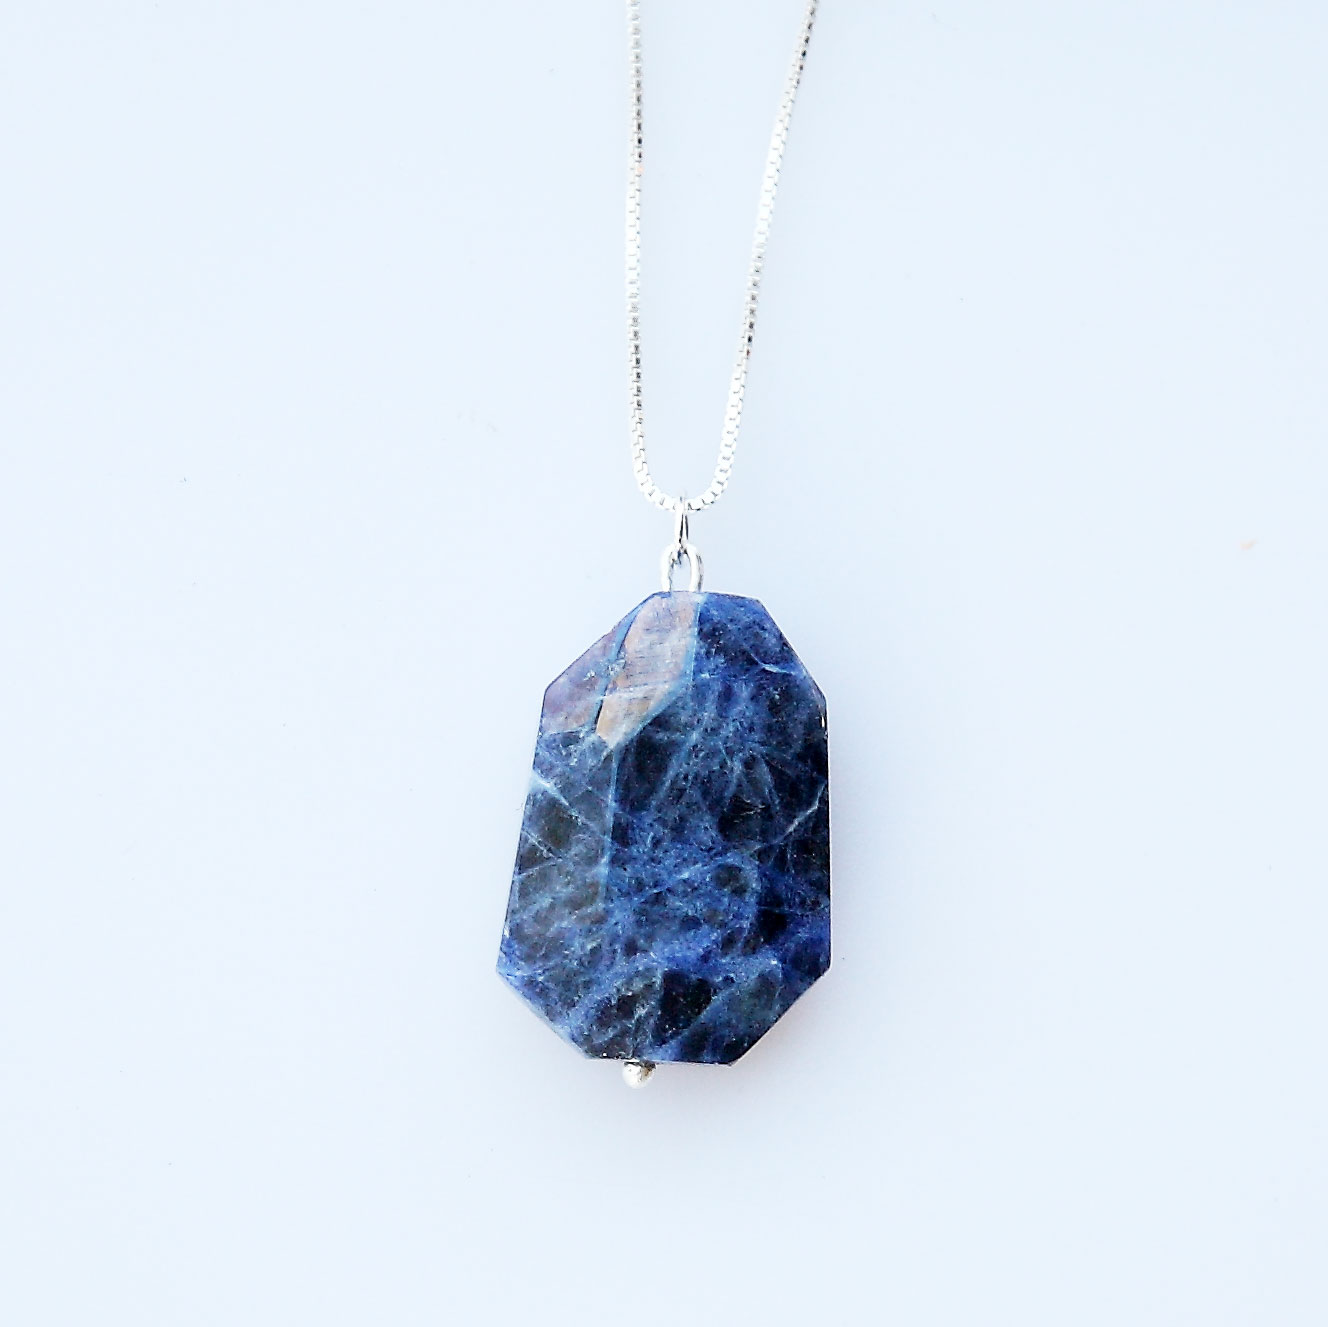 crystal real shop stone recycled denim gift products necklace vegan img sodalite pendant kayla rox with jewelry blue